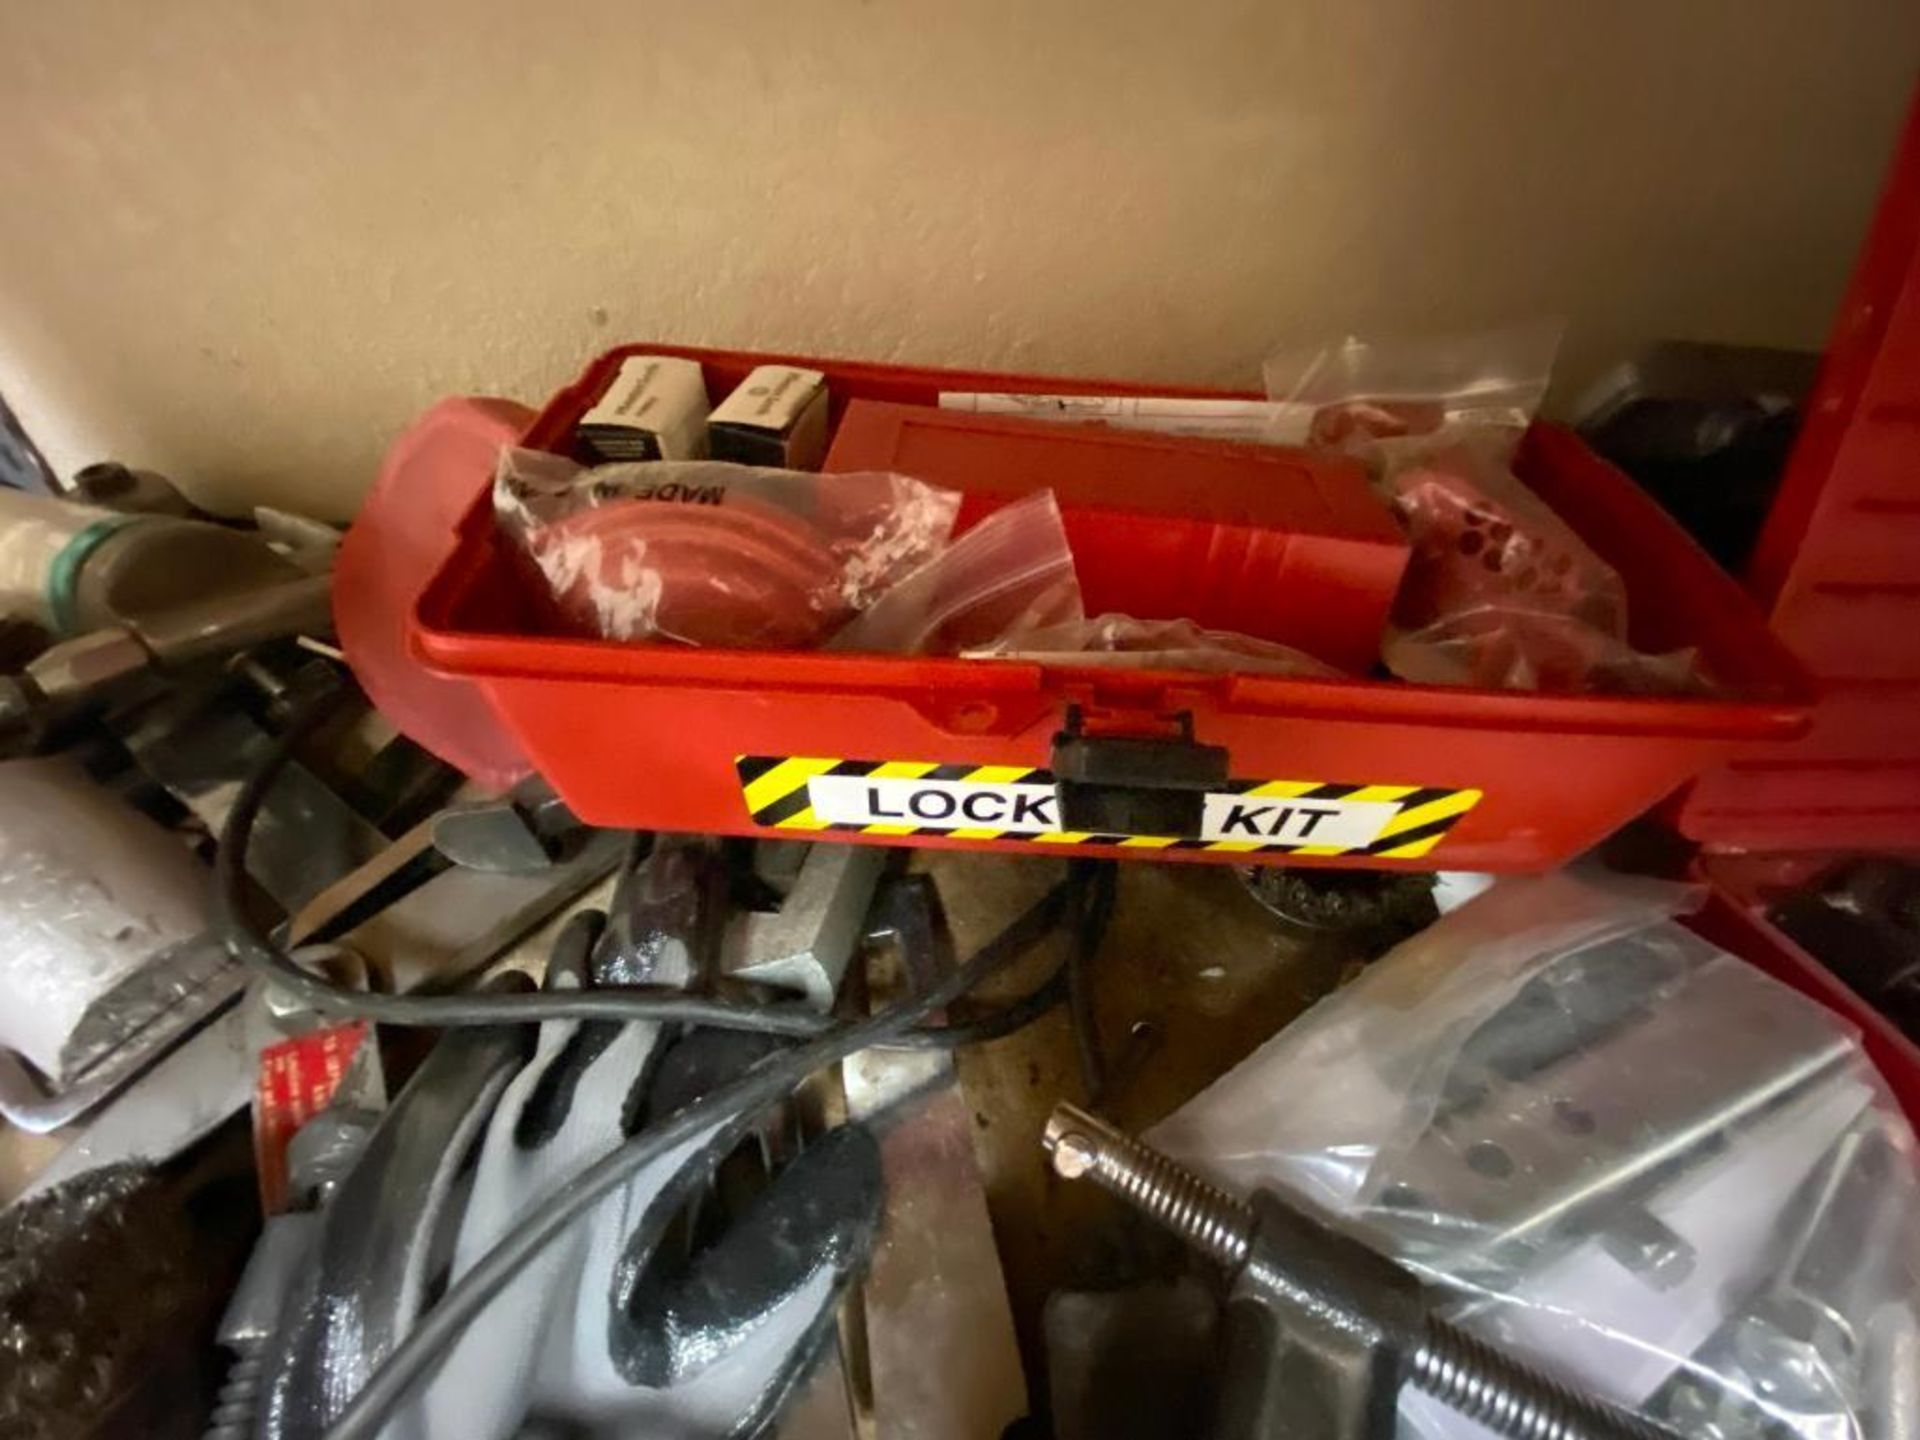 various tools includes bits, large wrenches, lockout tagout kit, grinder - Image 9 of 18